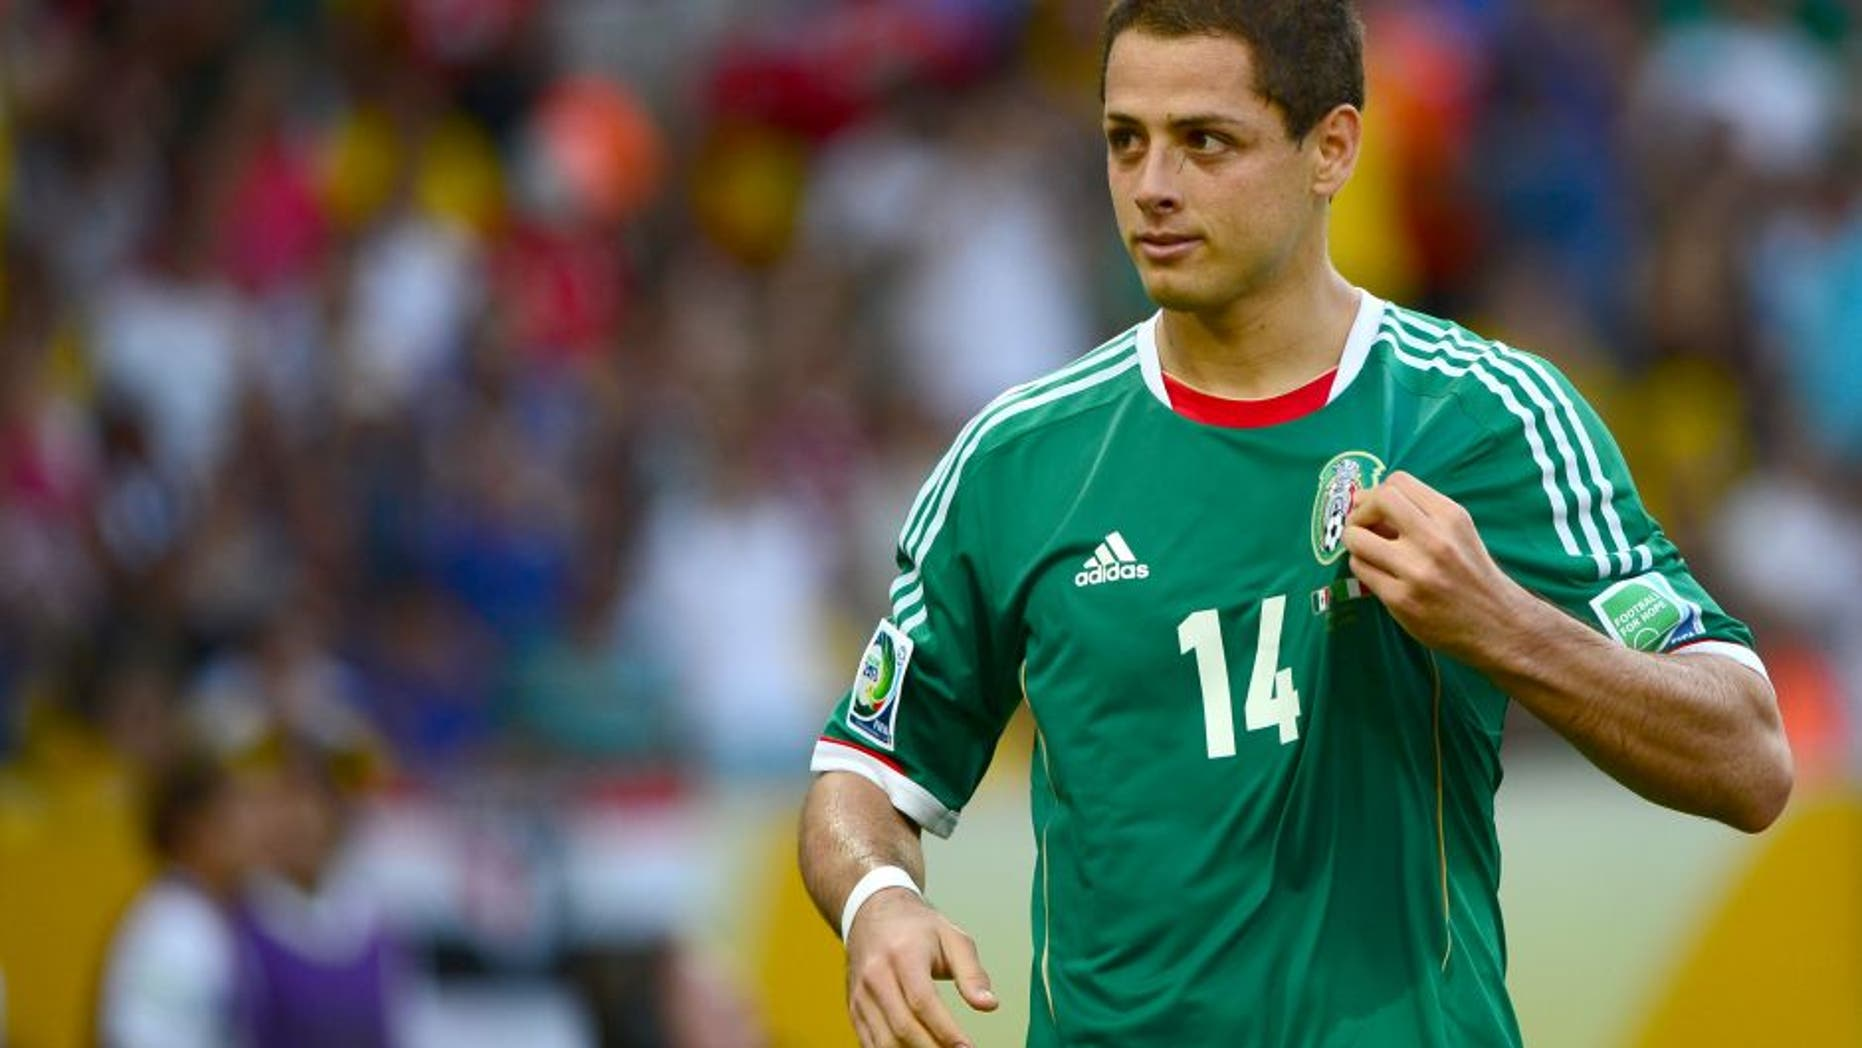 Mexico's forward Javier Hernandez celebrates after scoring a penalty against Italy, during their FIFA Confederations Cup Brazil 2013 Group A football match, at the Maracana Stadium in Rio de Janeiro on June 16, 2013. AFP PHOTO / CHRISTOPHE SIMON (Photo credit should read CHRISTOPHE SIMON/AFP/Getty Images)